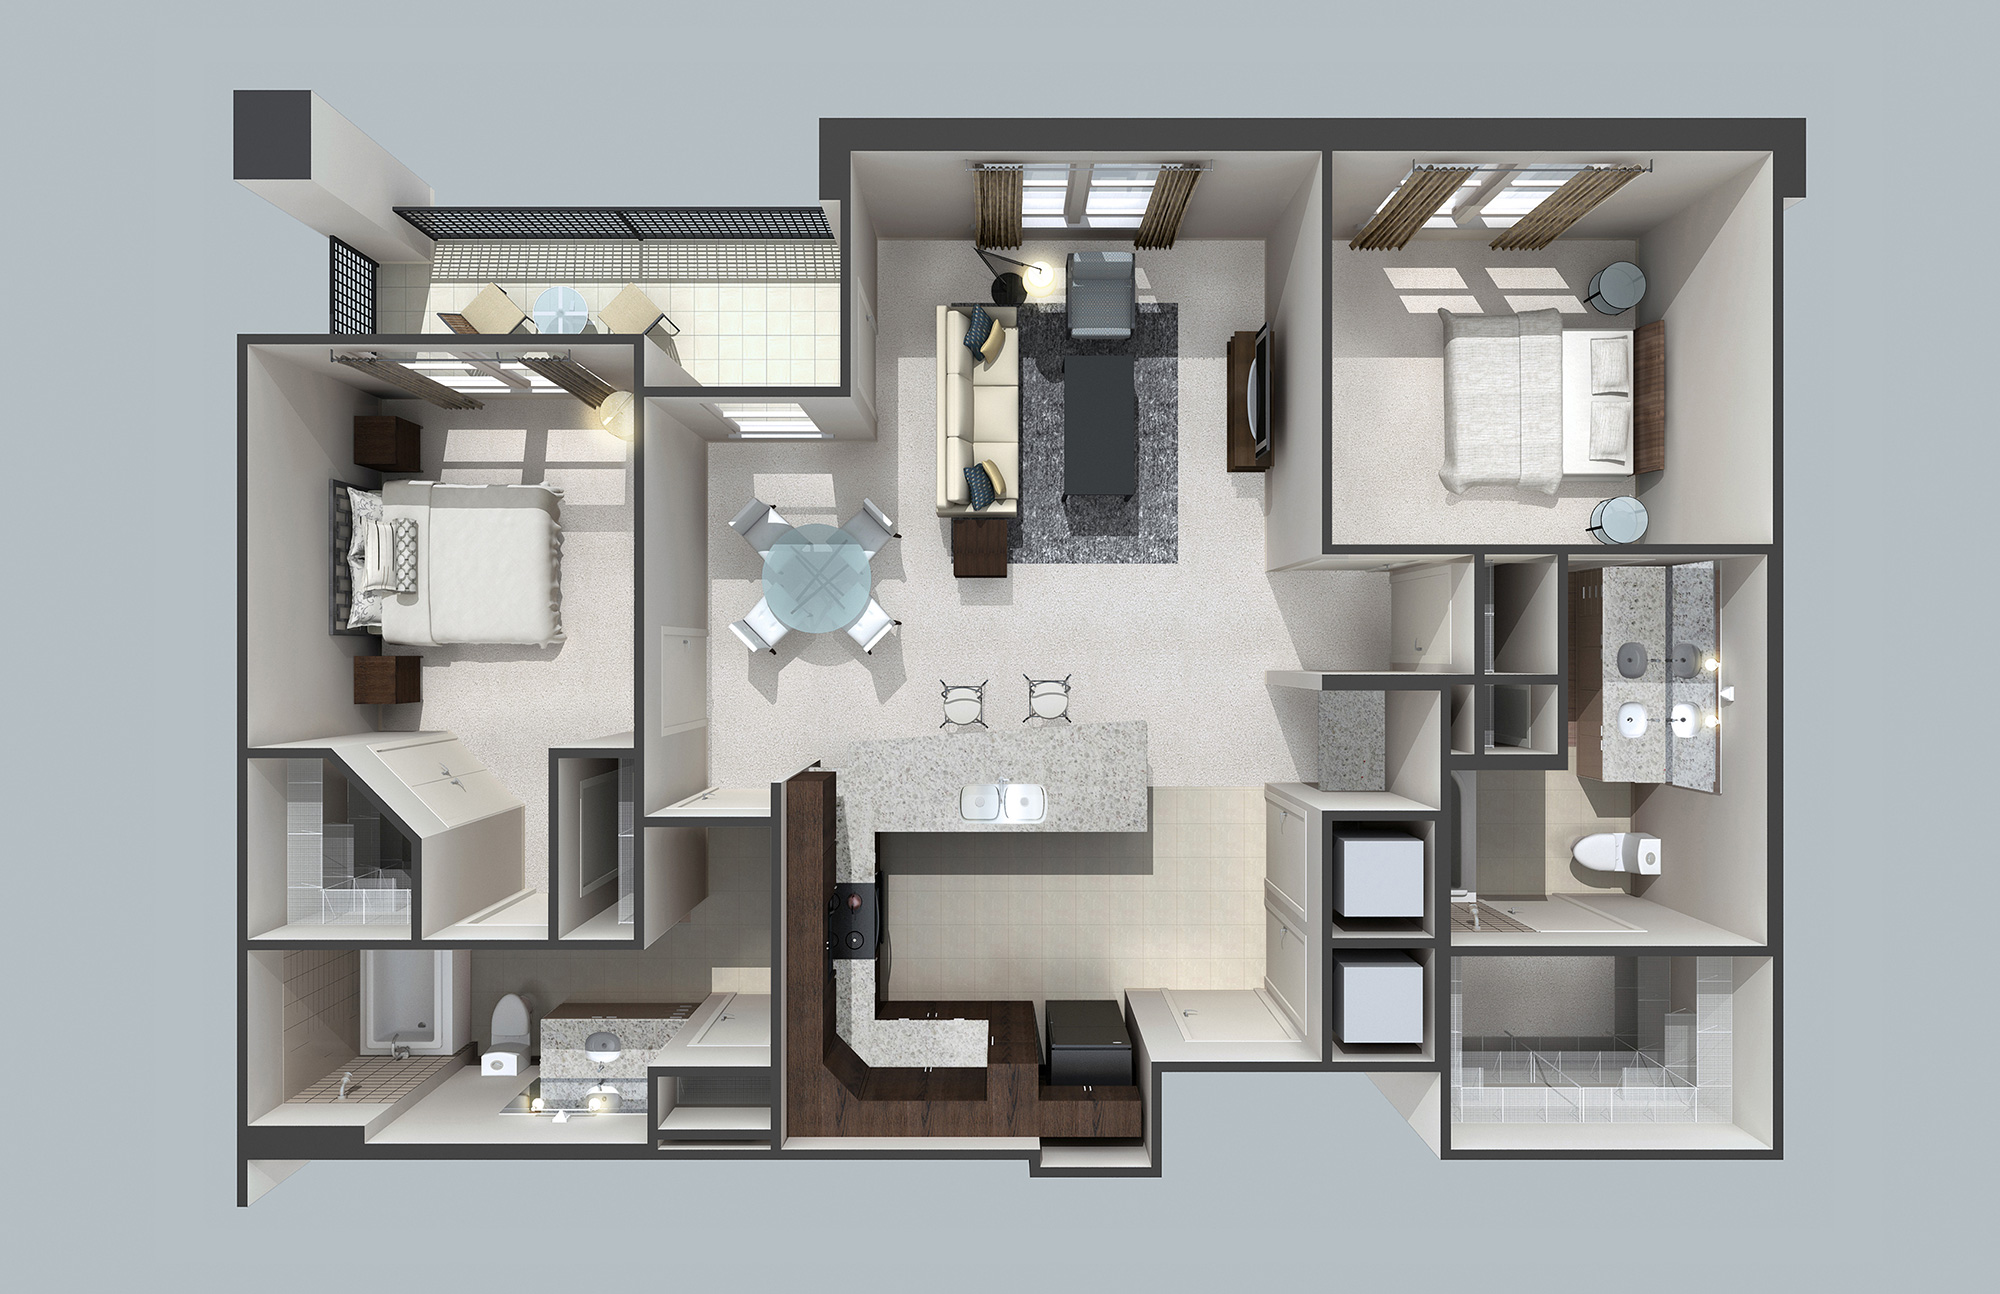 3d floor plans architectmedia for 3d plans online